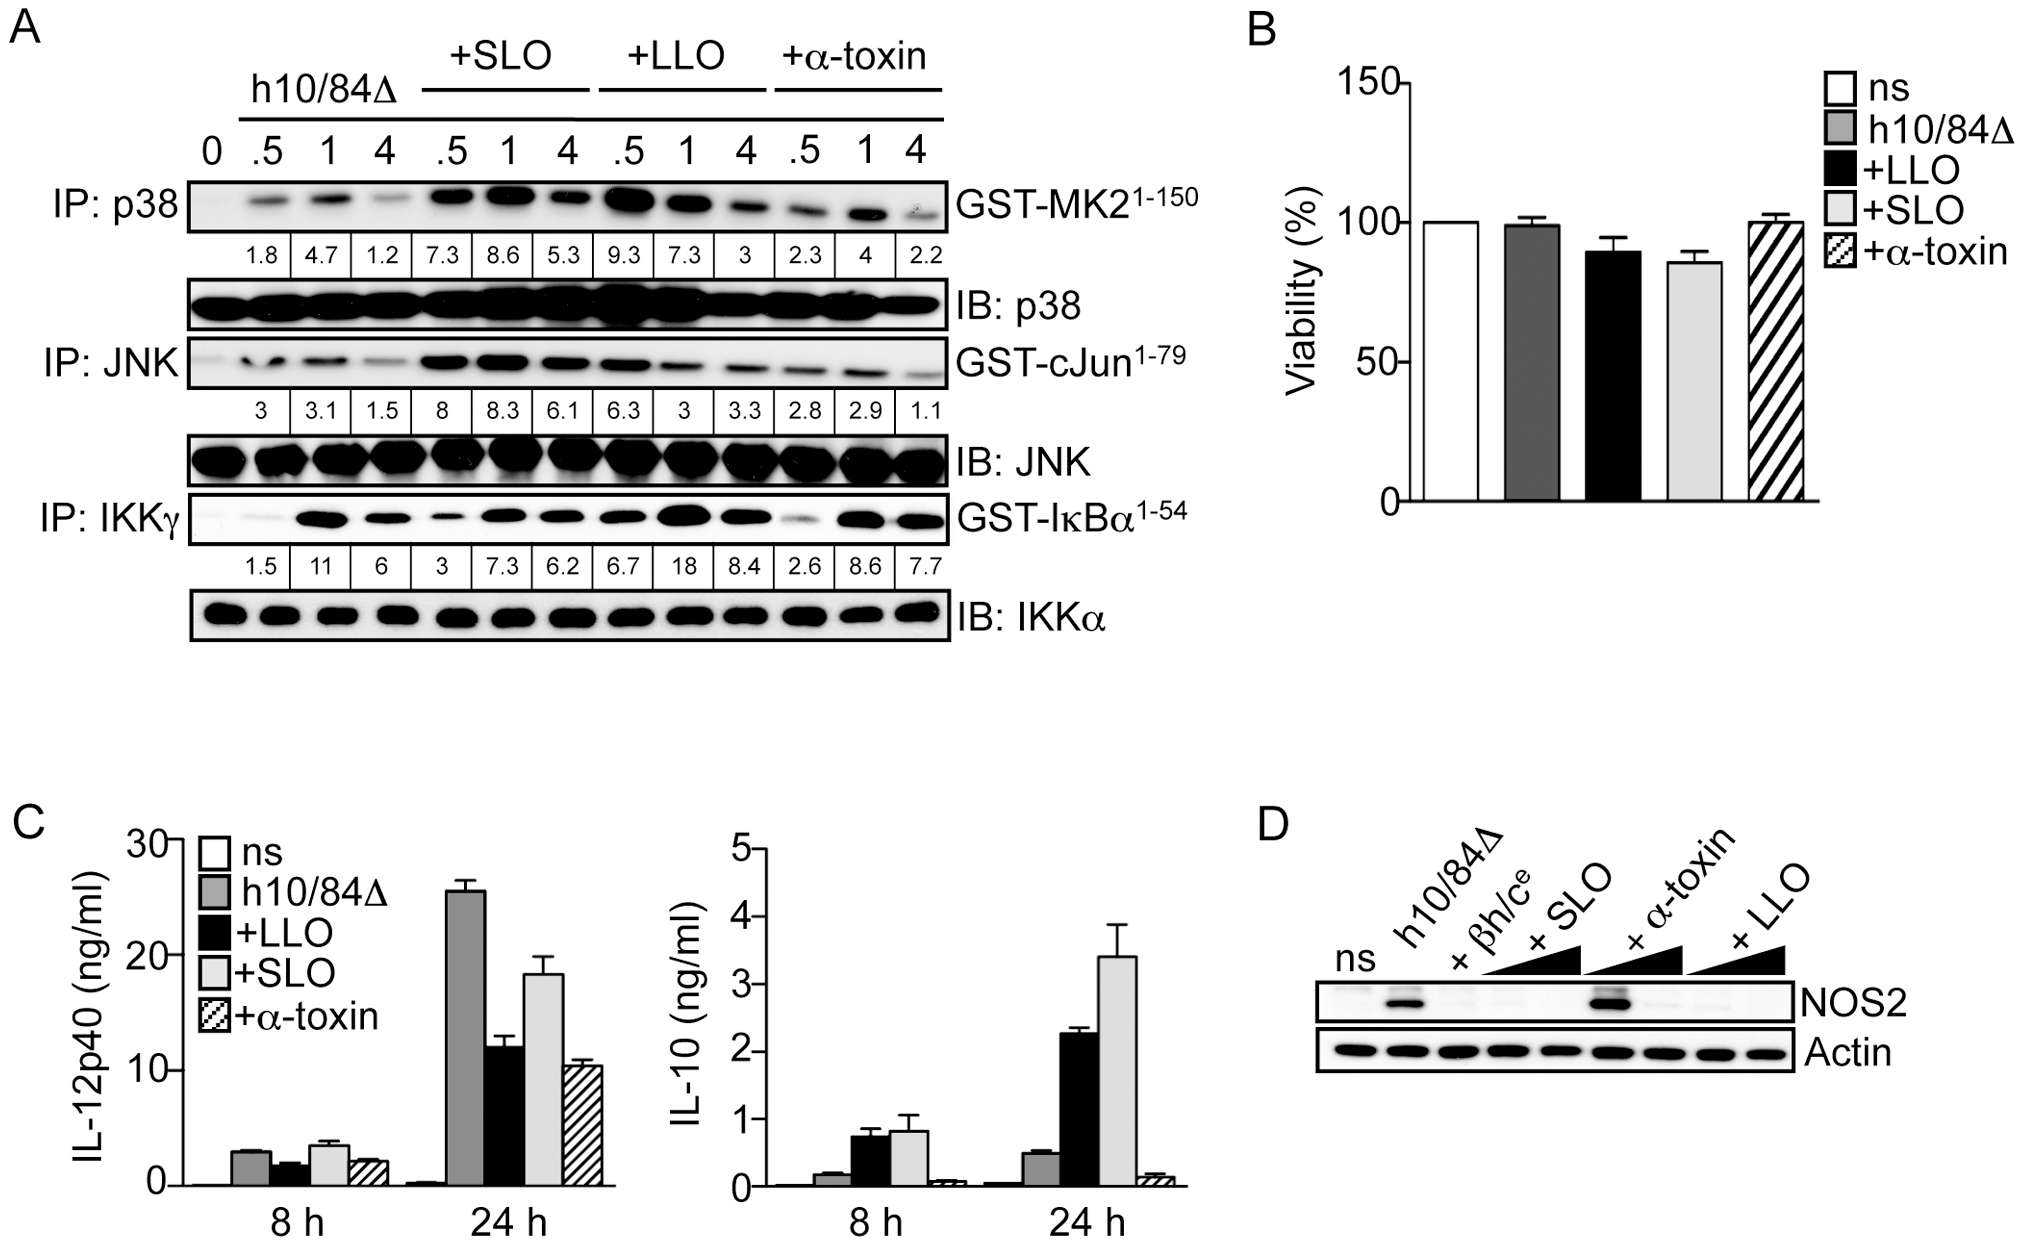 Triggering of p38-mediated IL-10 production in macrophages is not a general property of pore-forming toxins.